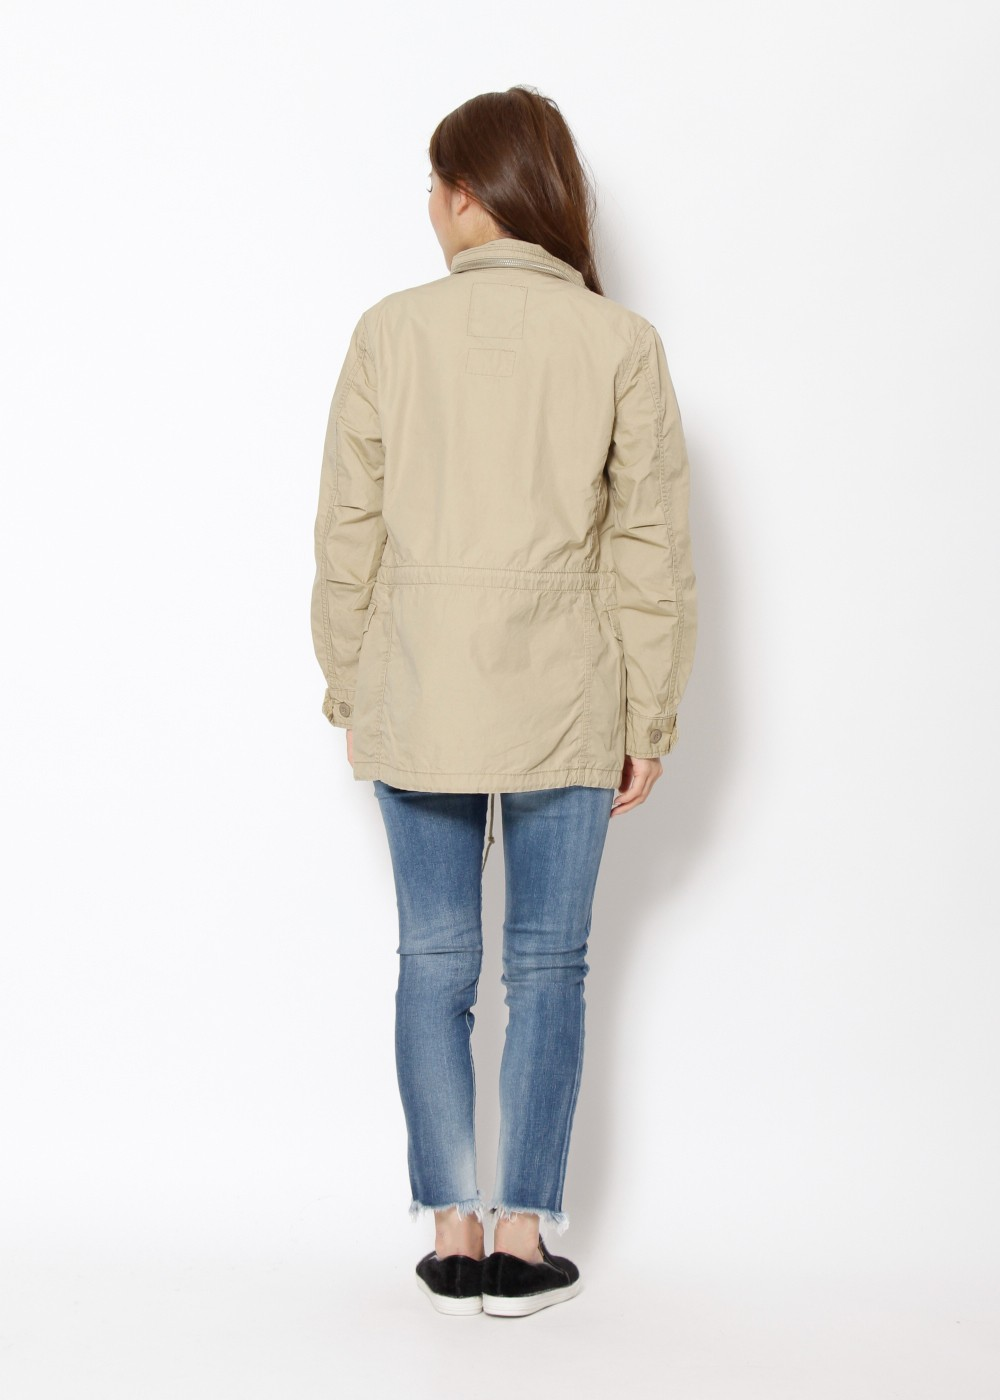 別注M-65COAT|BEIGE|ミリタリージャケット|URBAN RESEARCH warehouse Tops&Outer|最大80%OFF